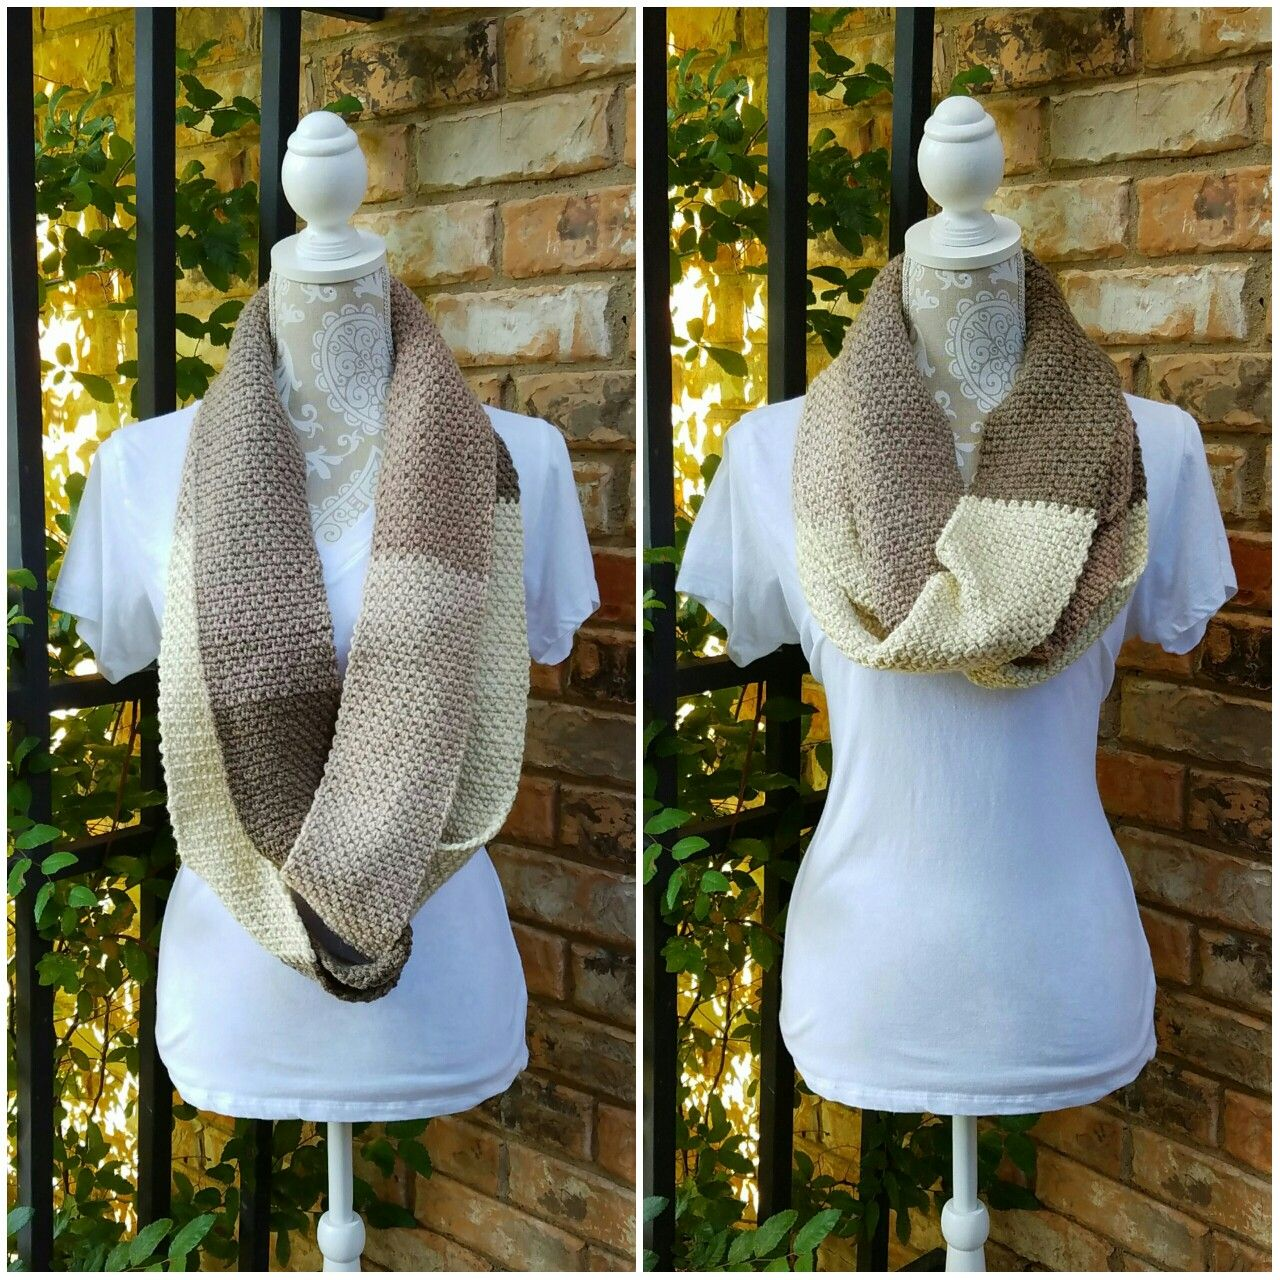 Crochet infinity scarf using the moss/granite stitch with Caron ...